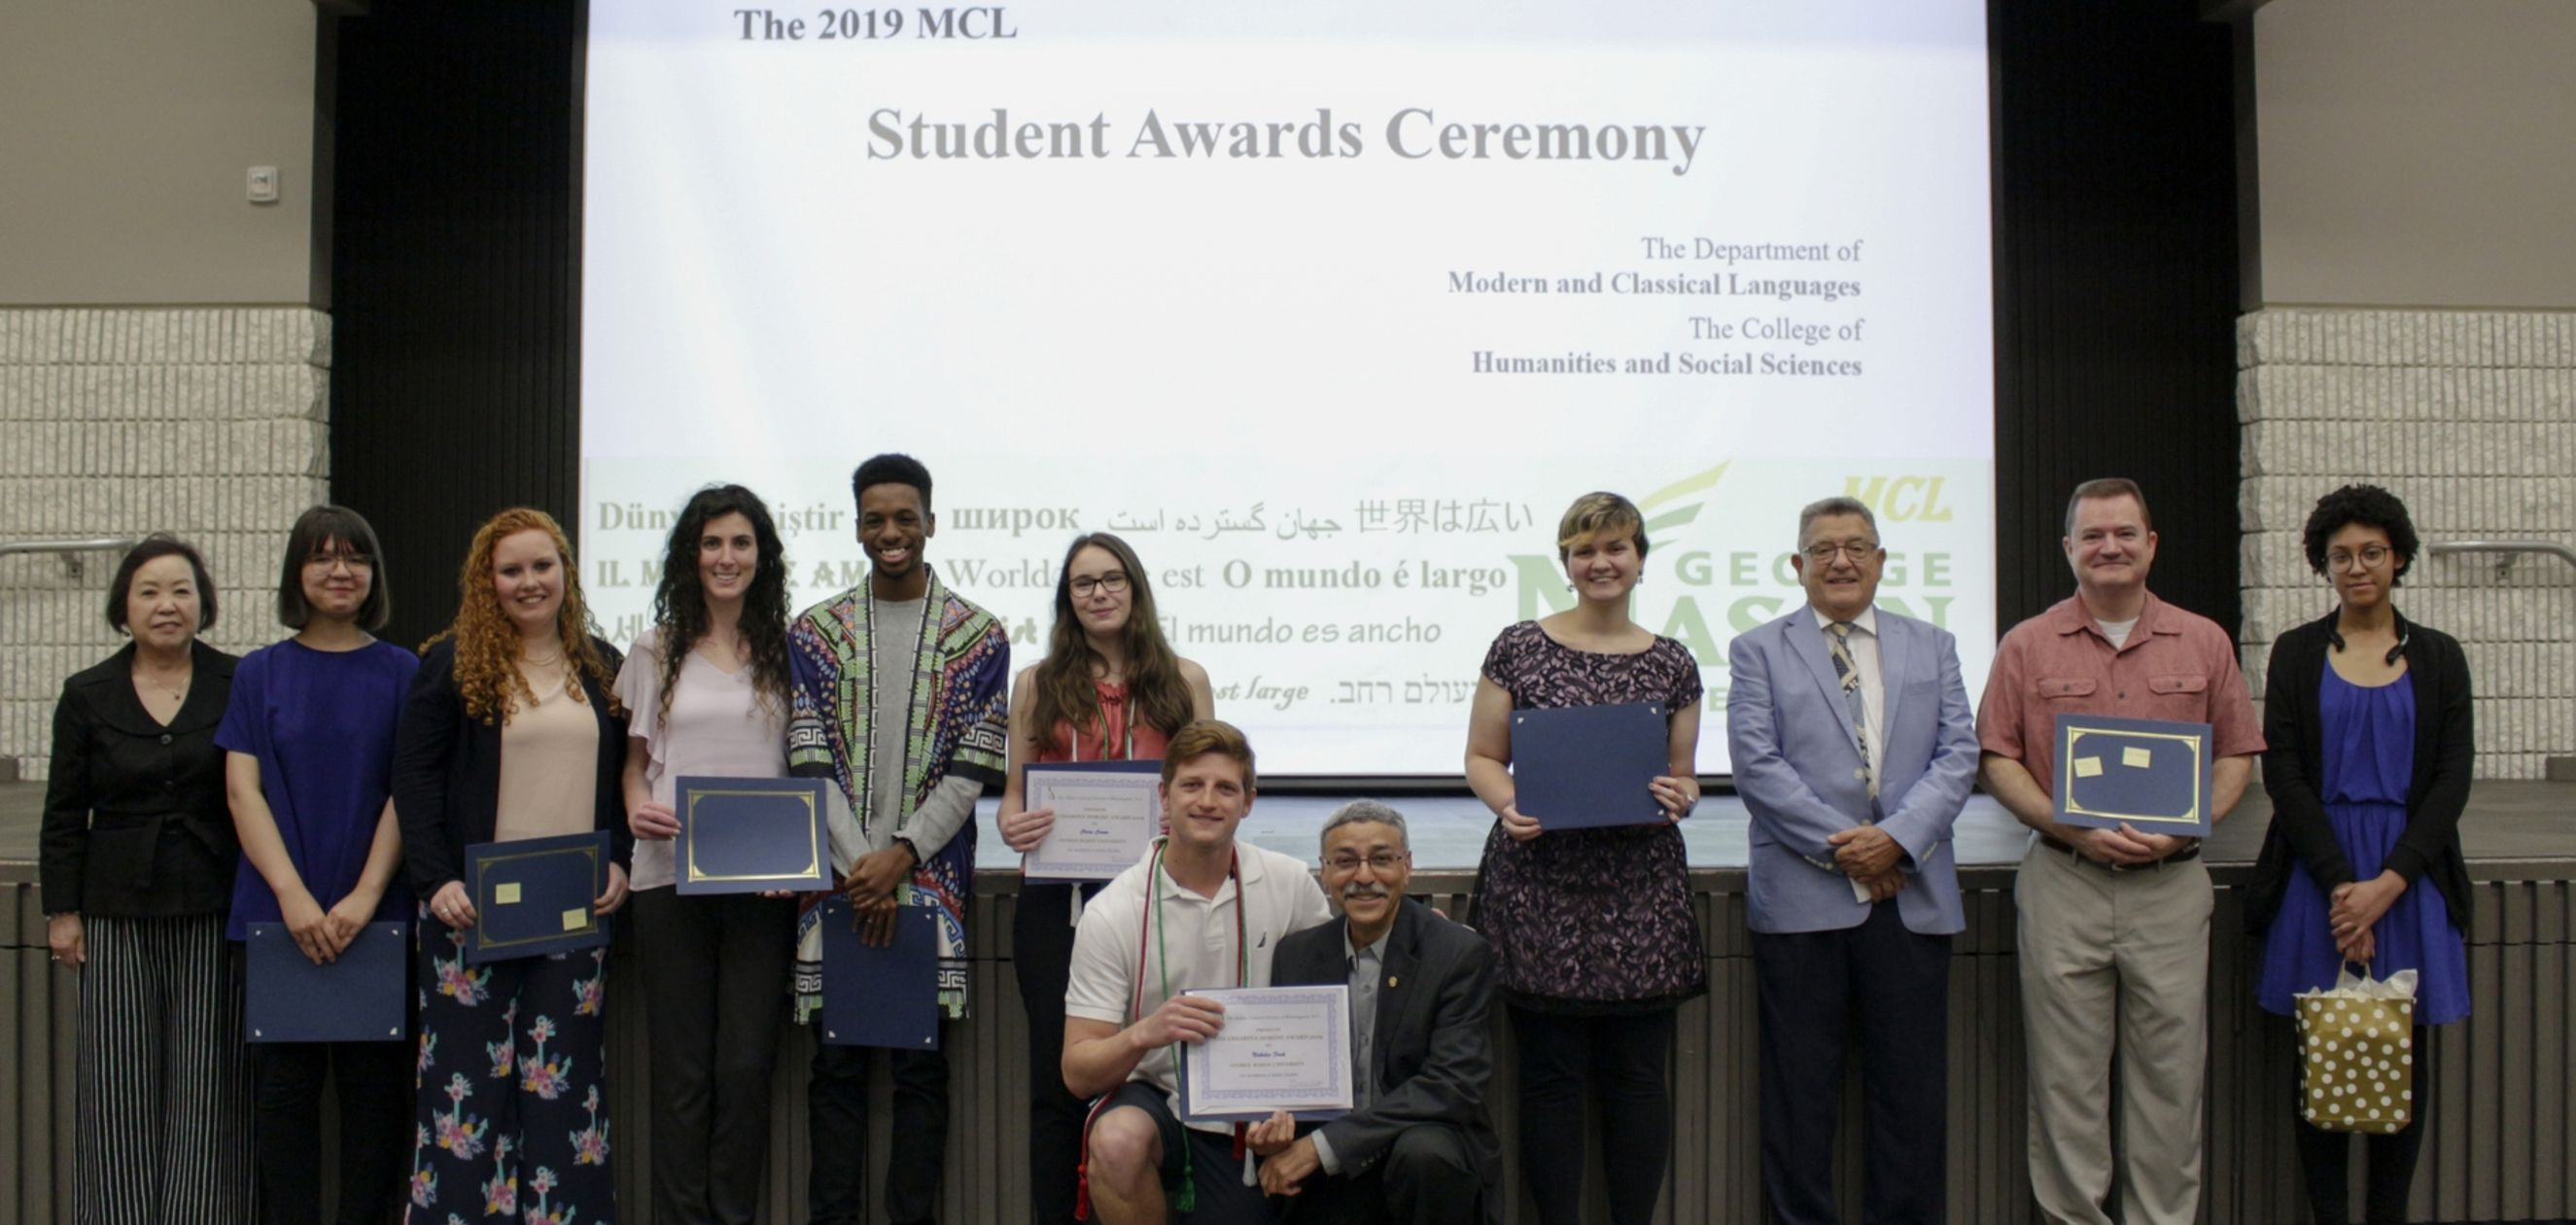 The 2019 MCL Student Awards Ceremony